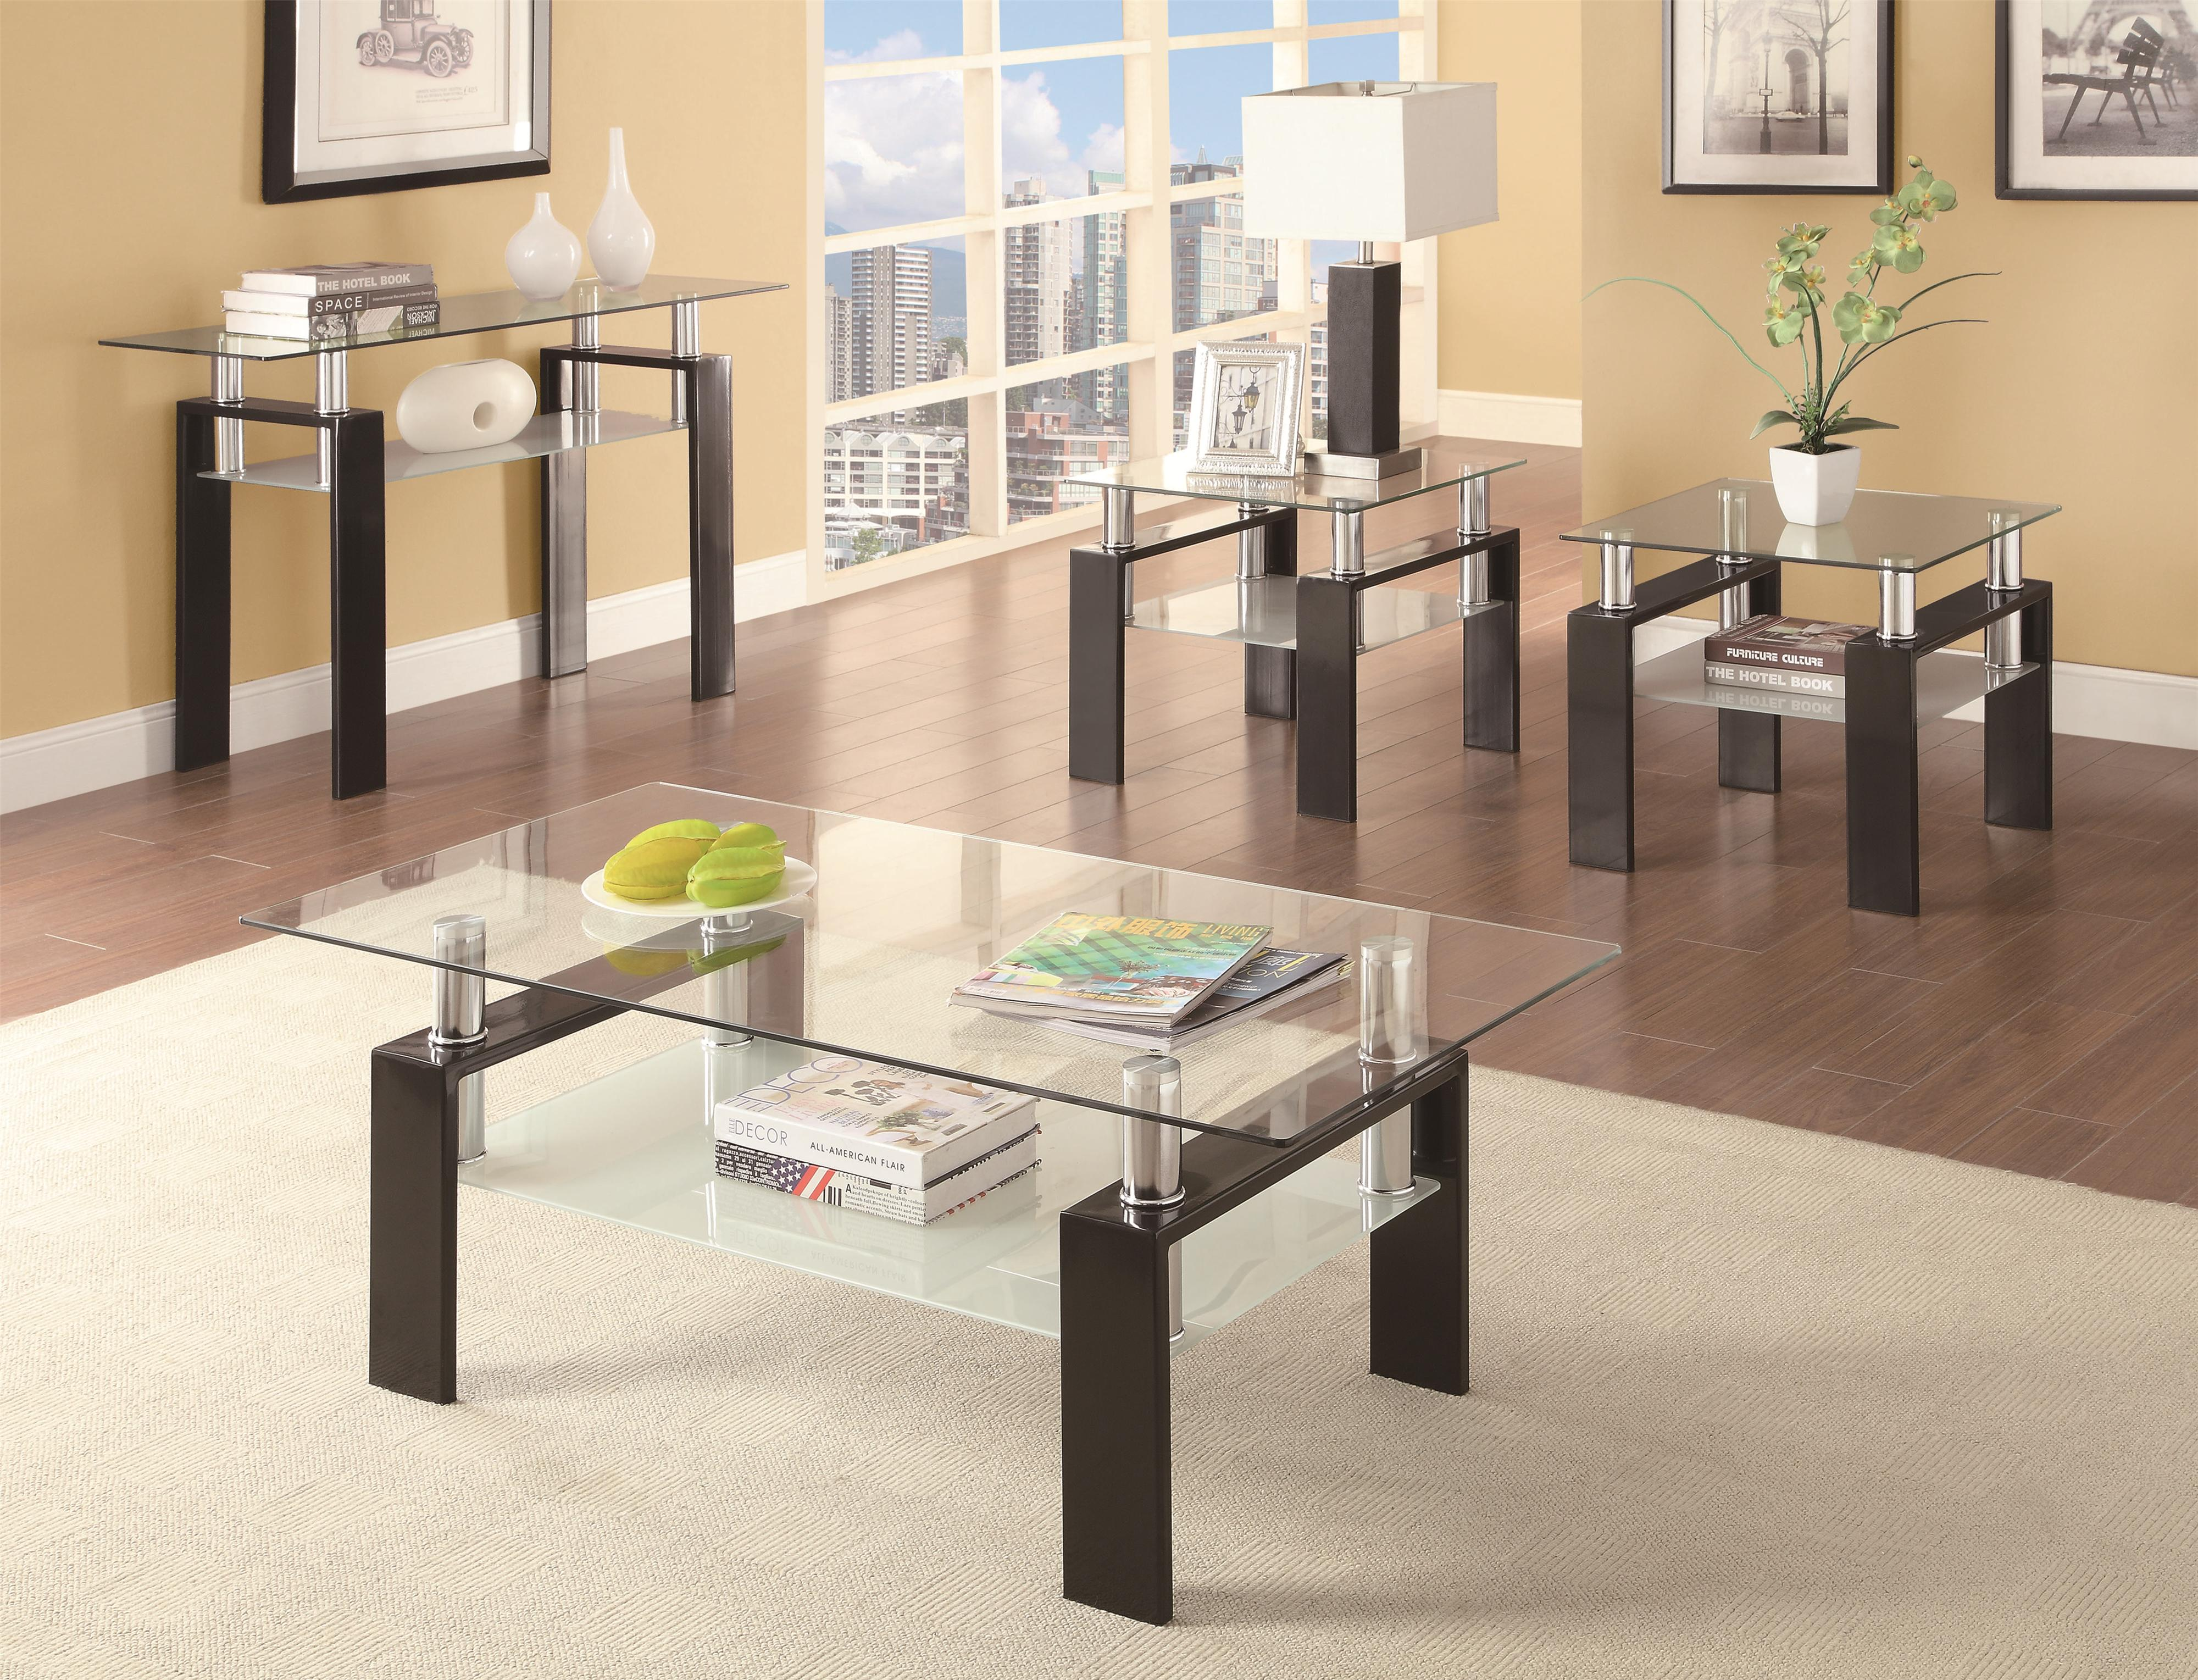 coffee tables stylish and contemporary occasional table set black glass end marble top bistro side metal hairpin furniture legs rustic designs breakfast ideas white bookcase real